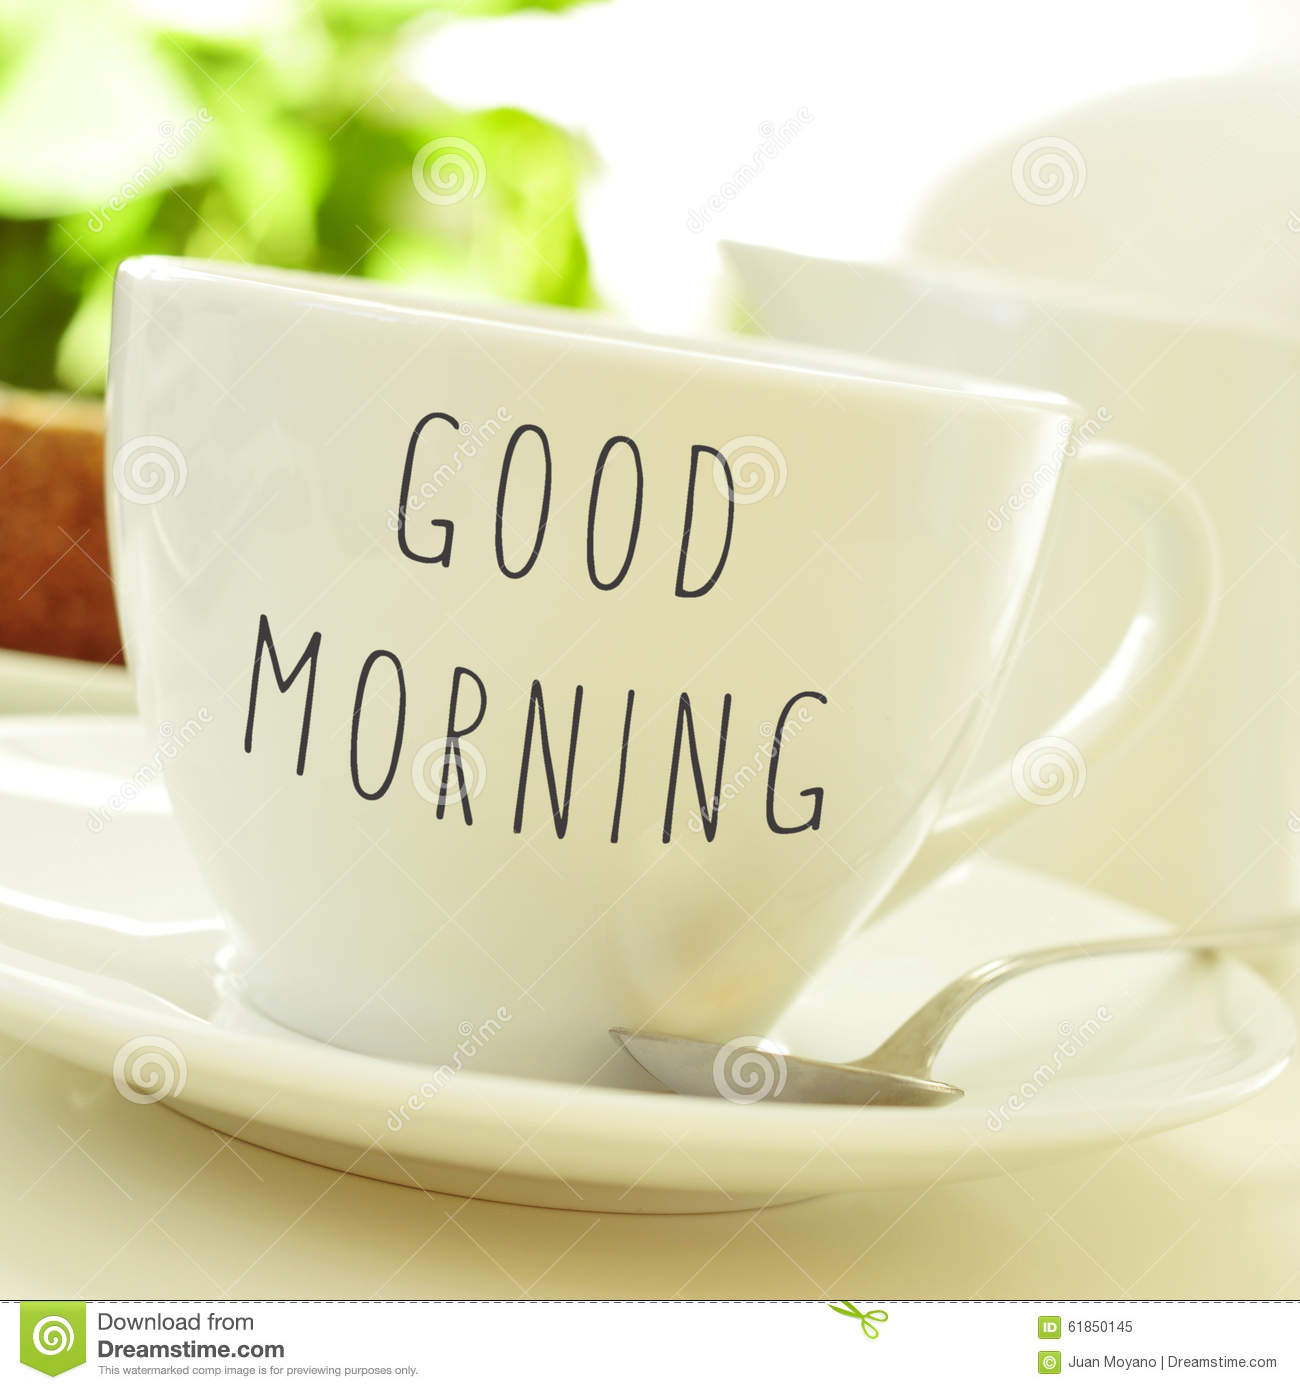 Text Good Morning On A Cup Of Coffee Or Tea Stock Image - Image of ...